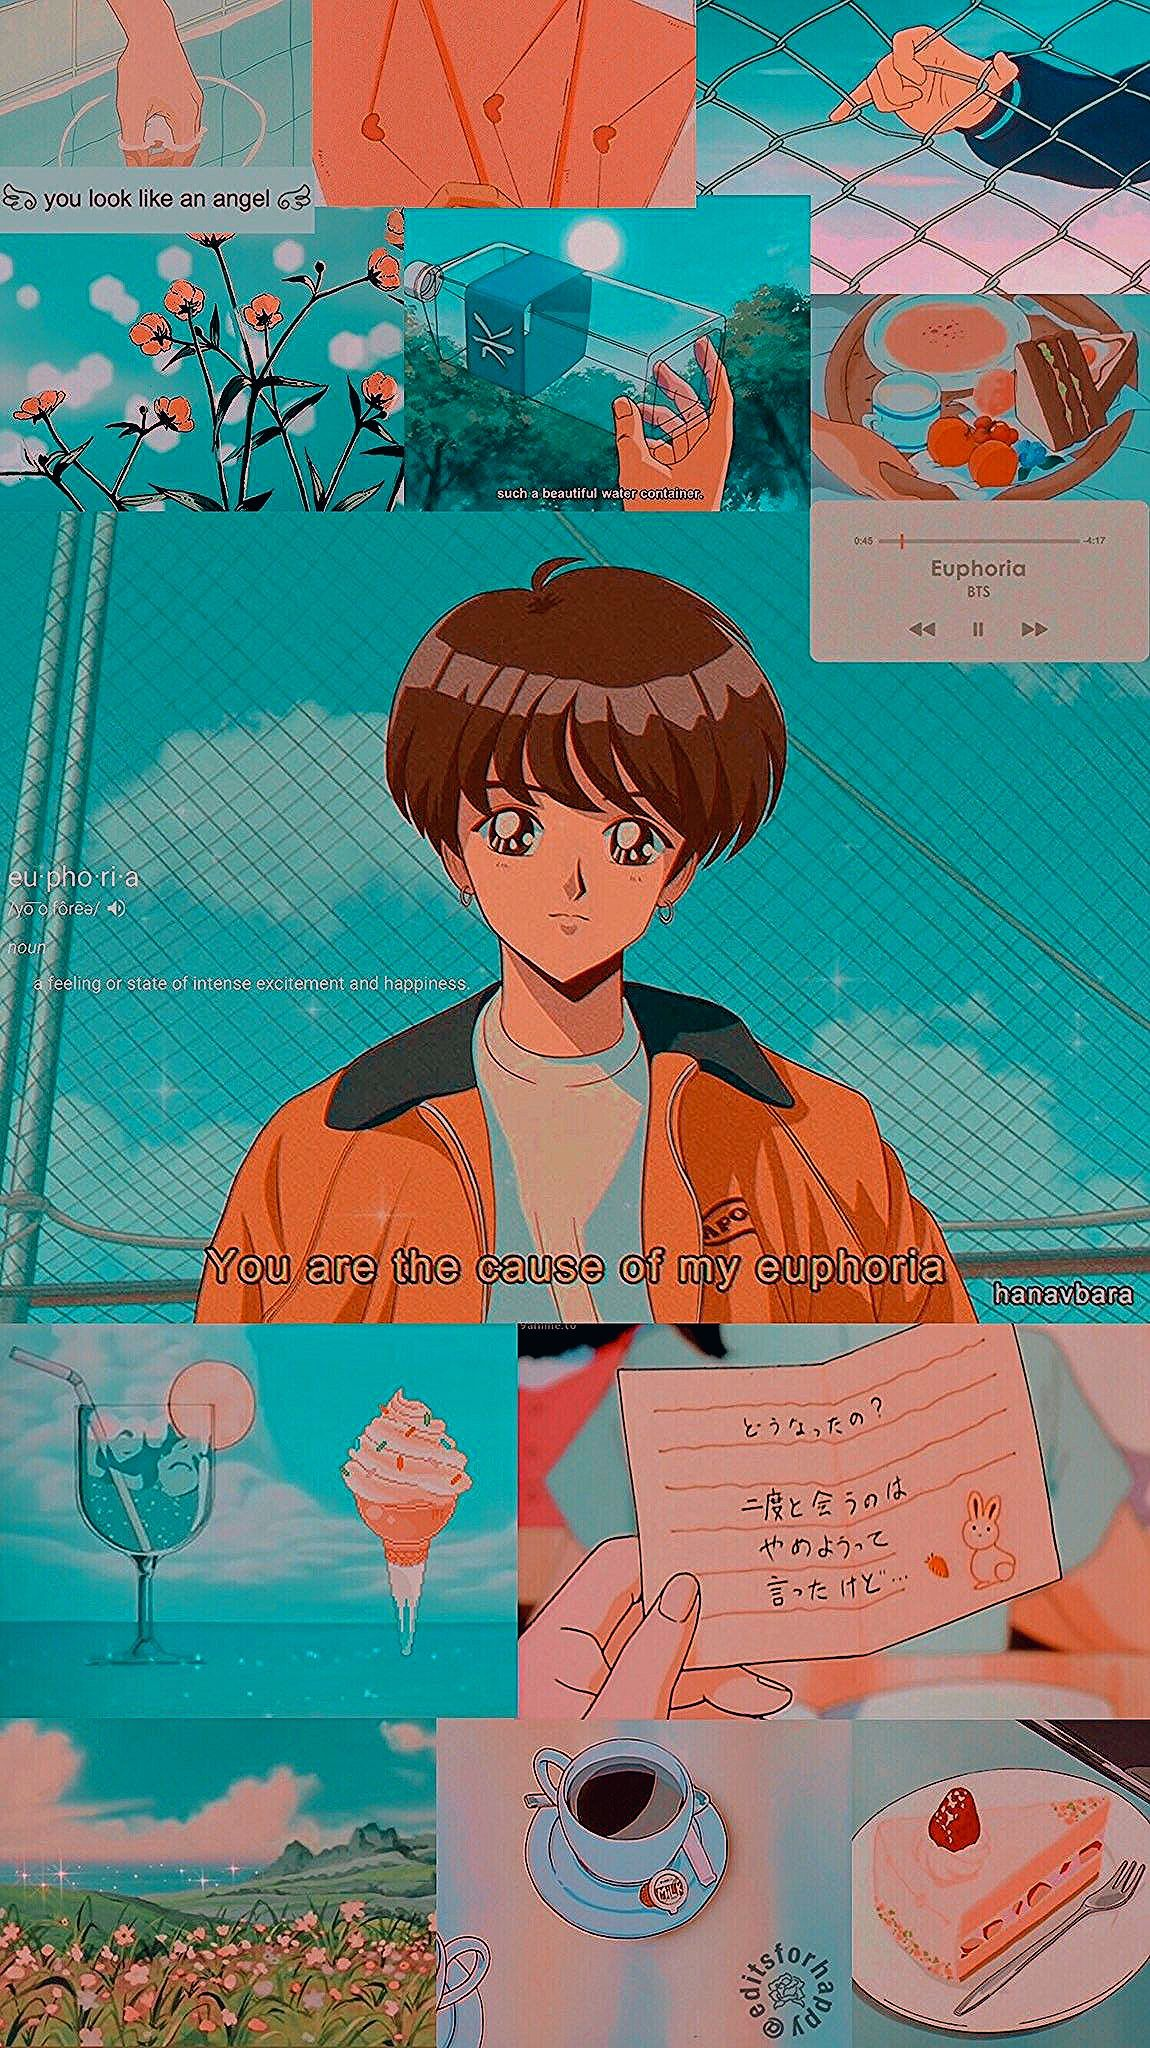 Jungkook Aesthetic Anime Wallpaper Credits to twitter 1150x2048